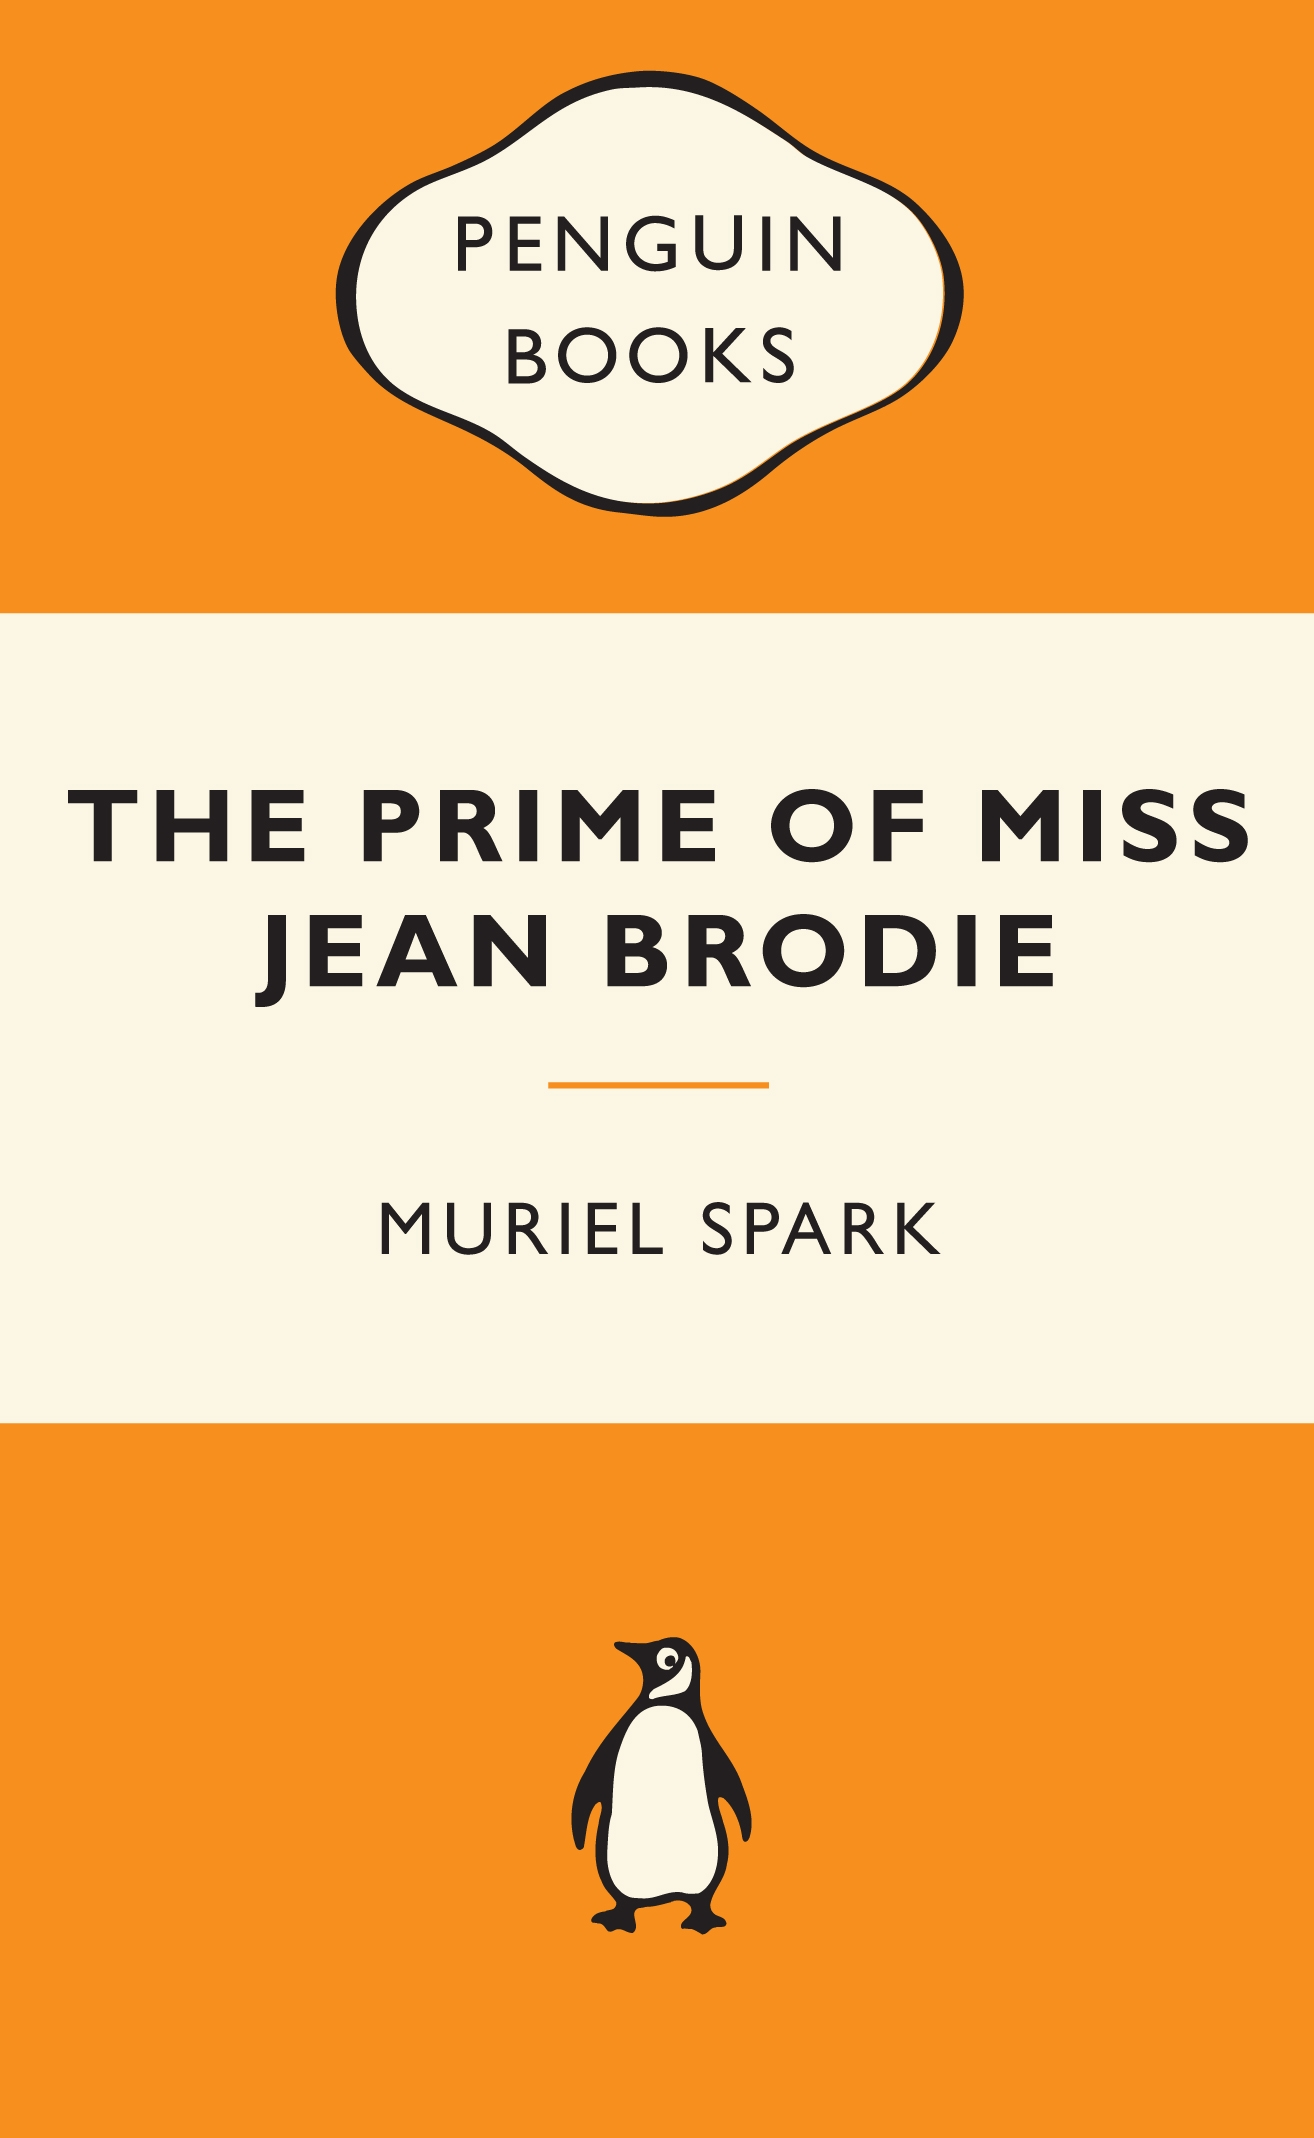 prime of miss jean brodie essay Of the essay jean prime brodie miss yes same capstone (huge research paper thing) and school and 2 jobs we shall check our pulses together.